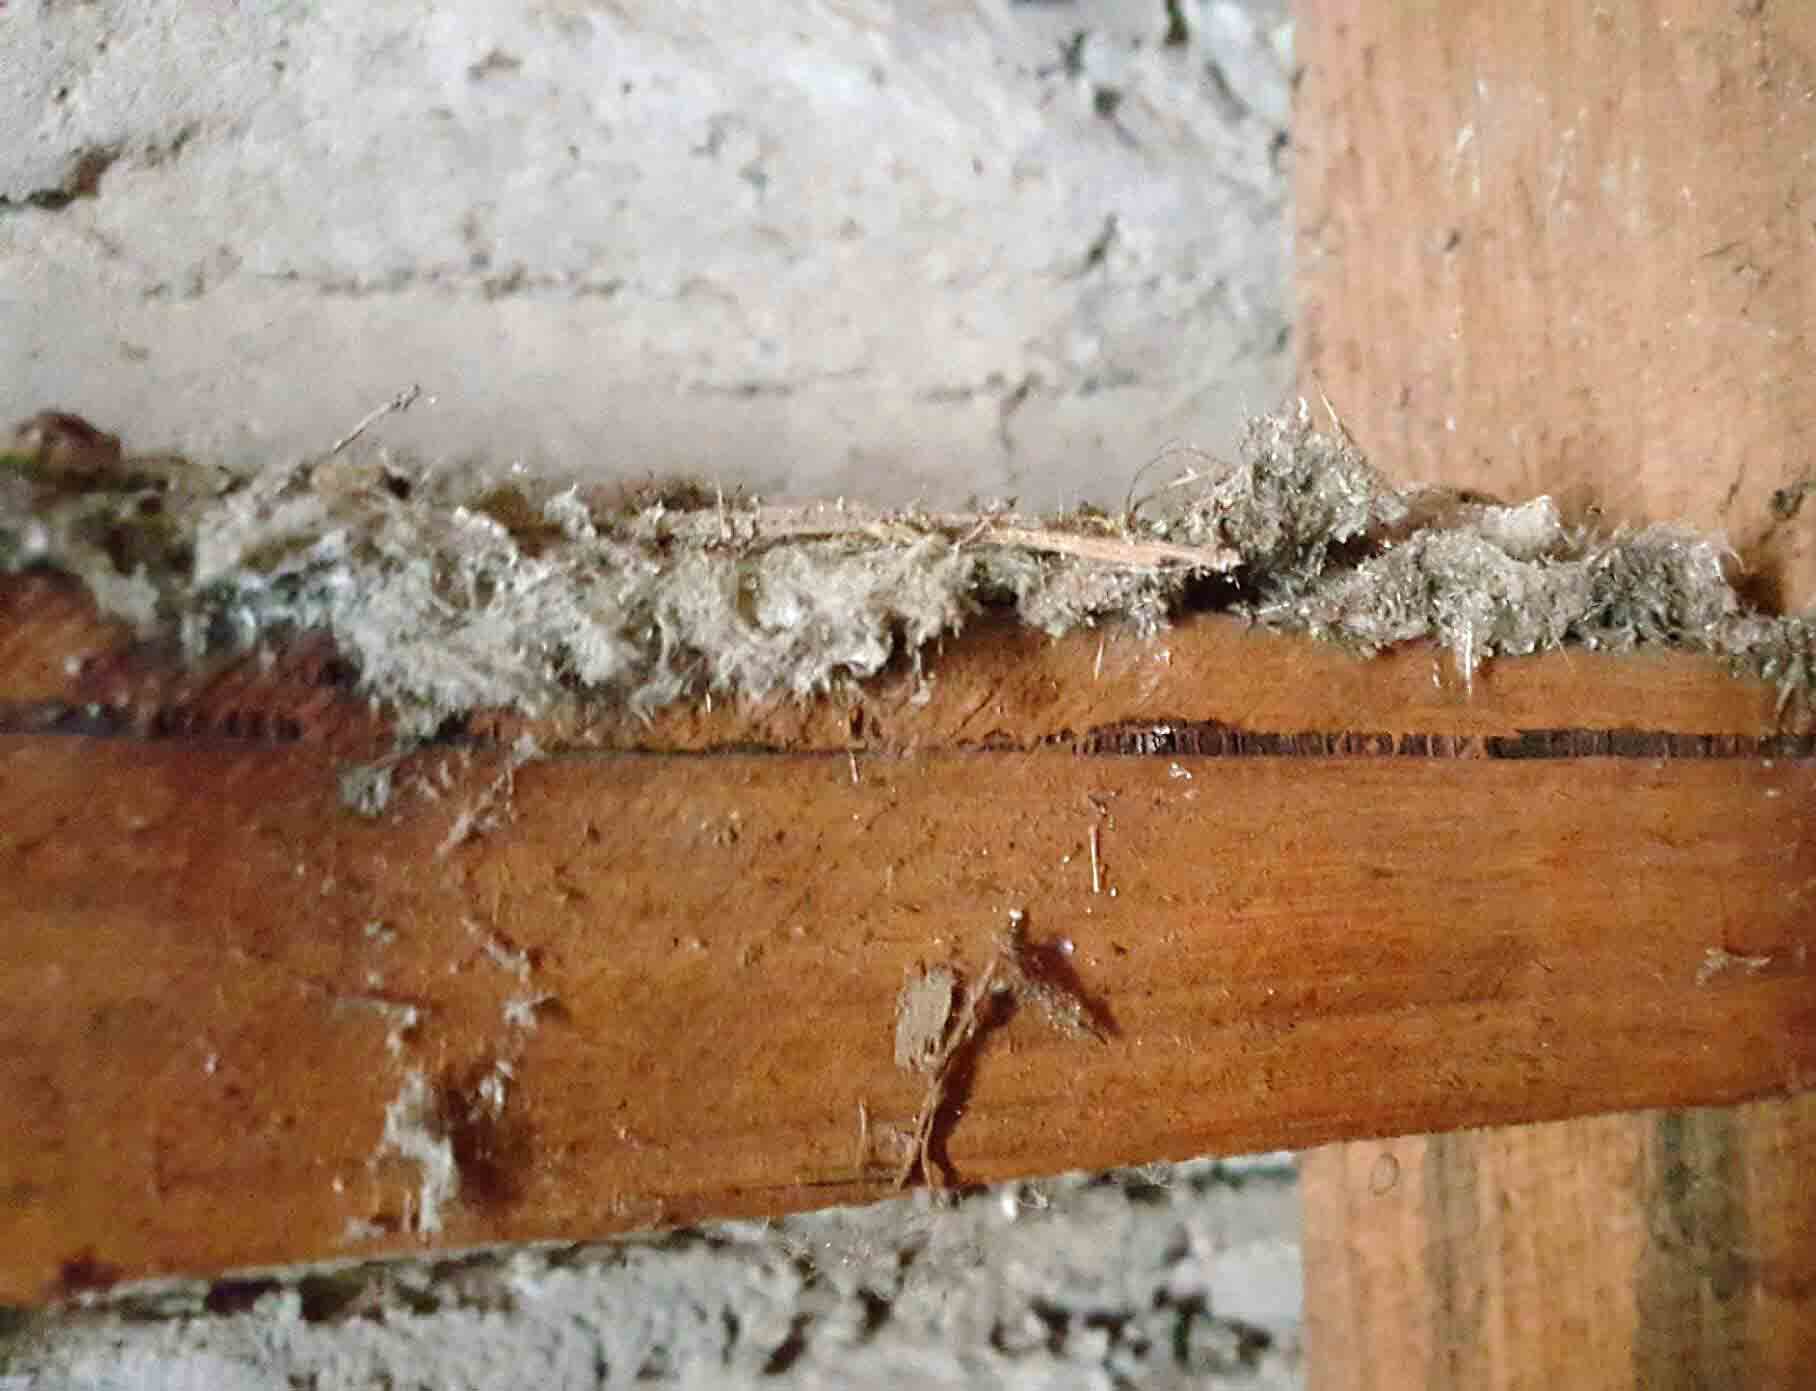 Mr. Fluffy asbestos insulation behind a wall on a wooden beam